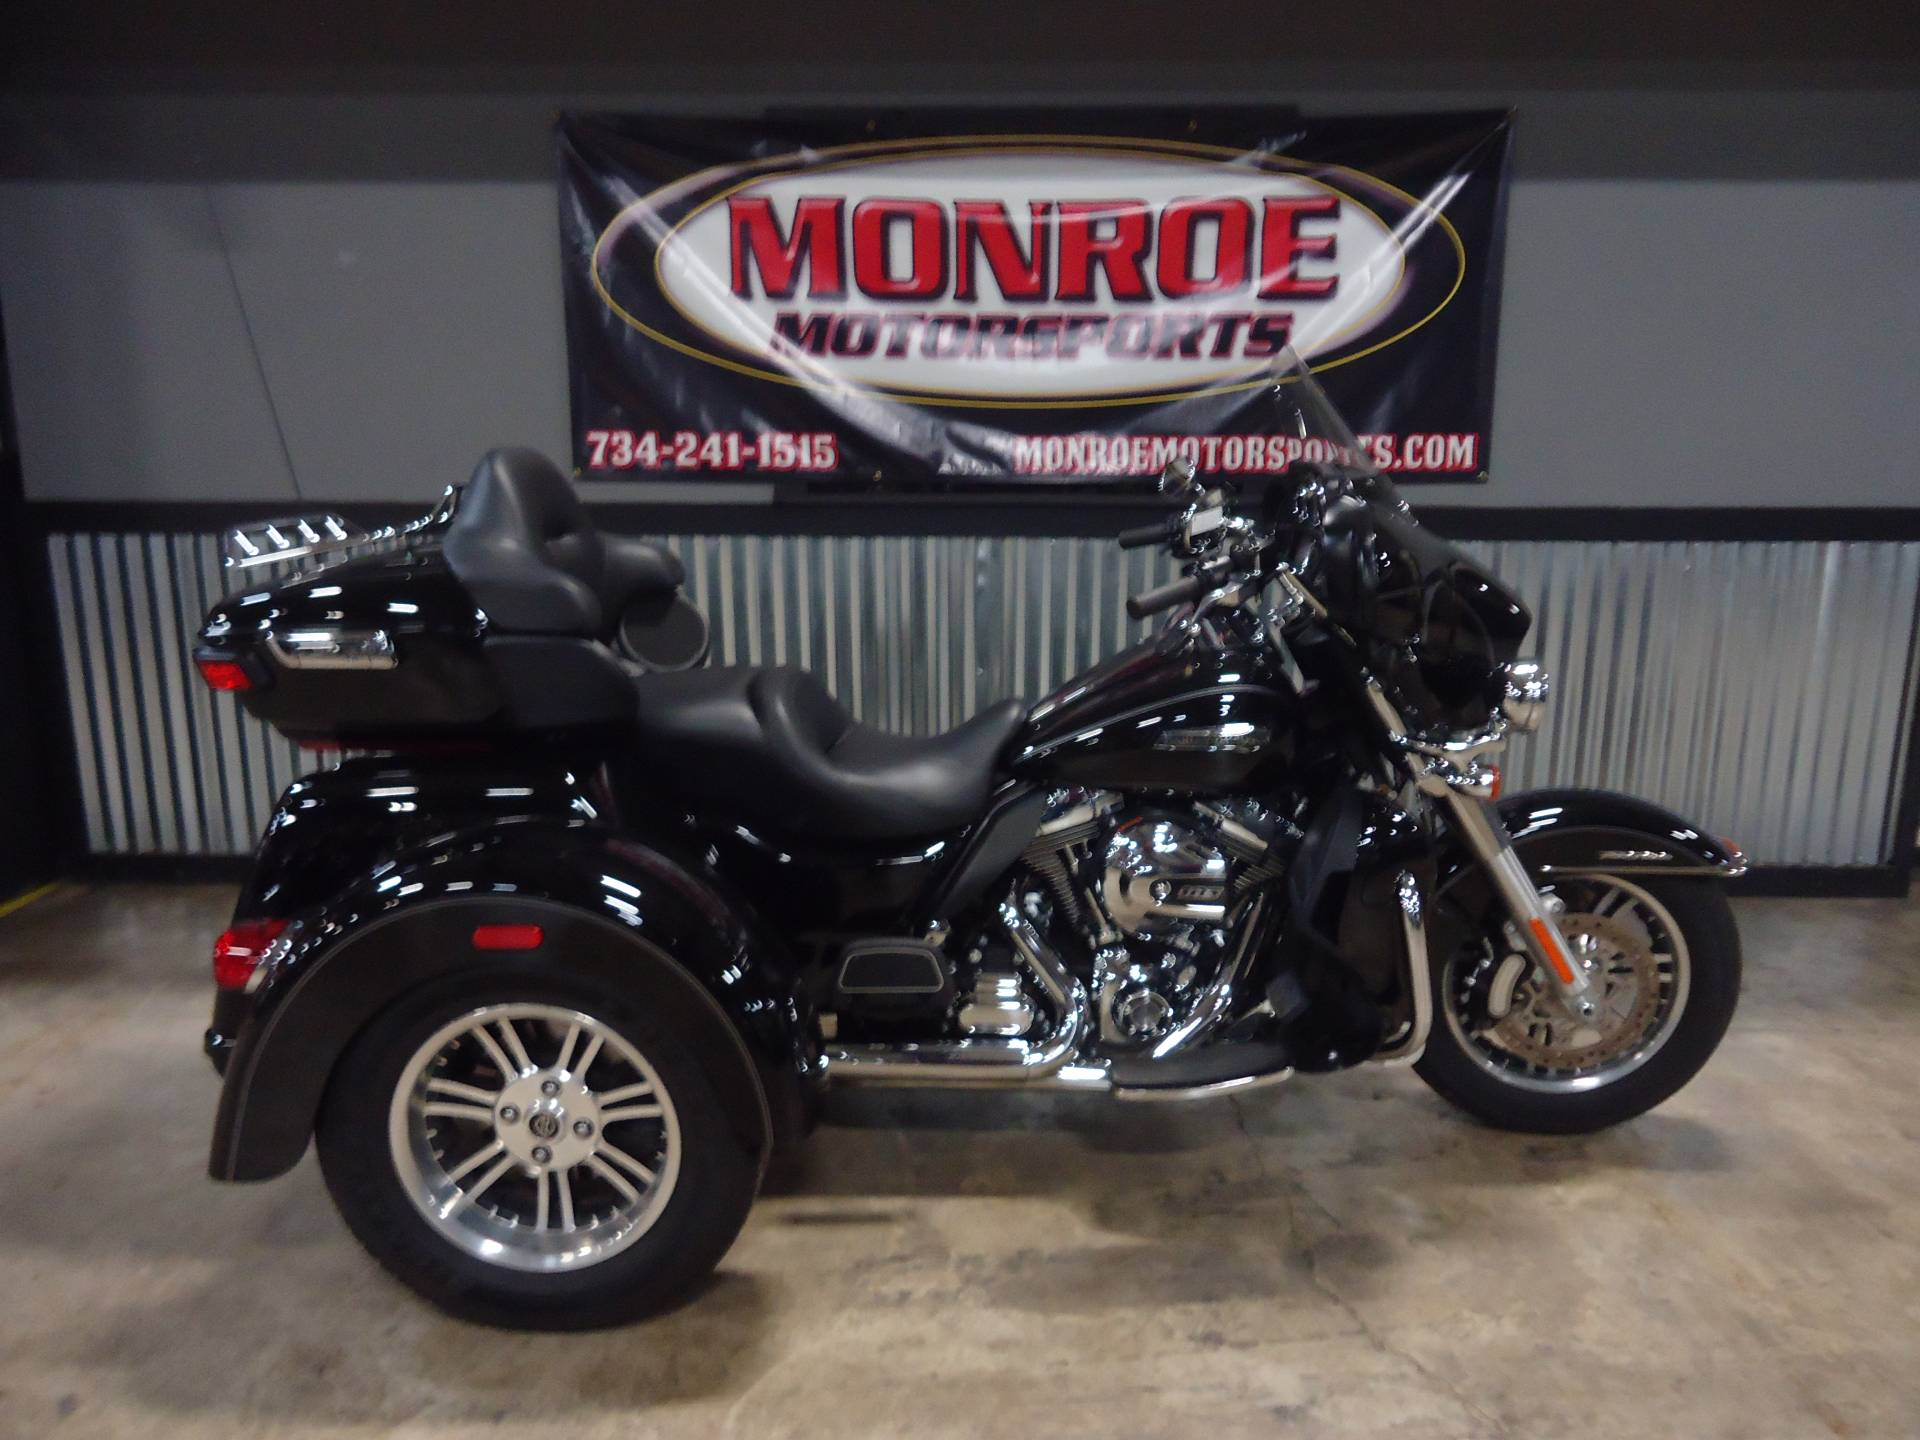 2015 Harley-Davidson Tri Glide&#174 Ultra in Monroe, Michigan